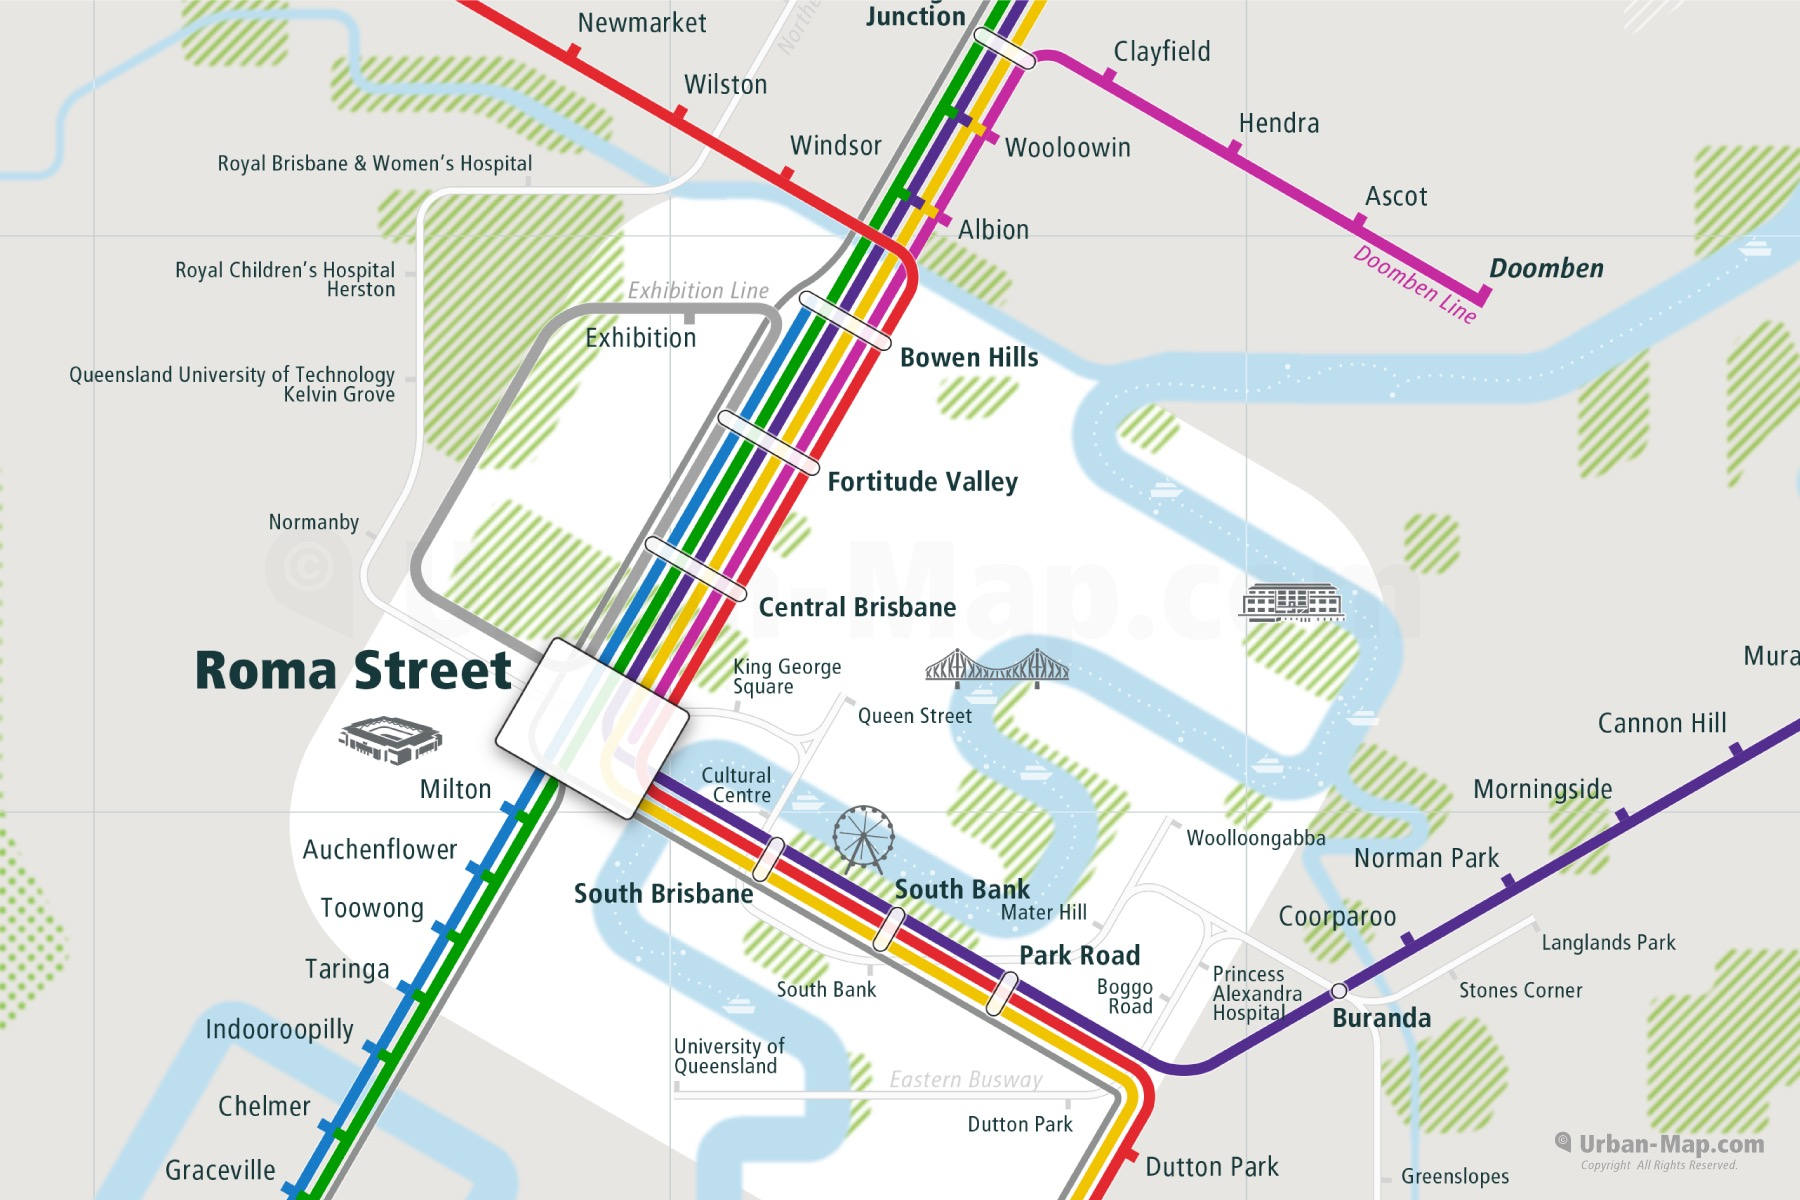 Brisbane City Rail Map shows the train and public transportation routes of Commuter Train, Tram, Busway, Airport Link - Close-Up